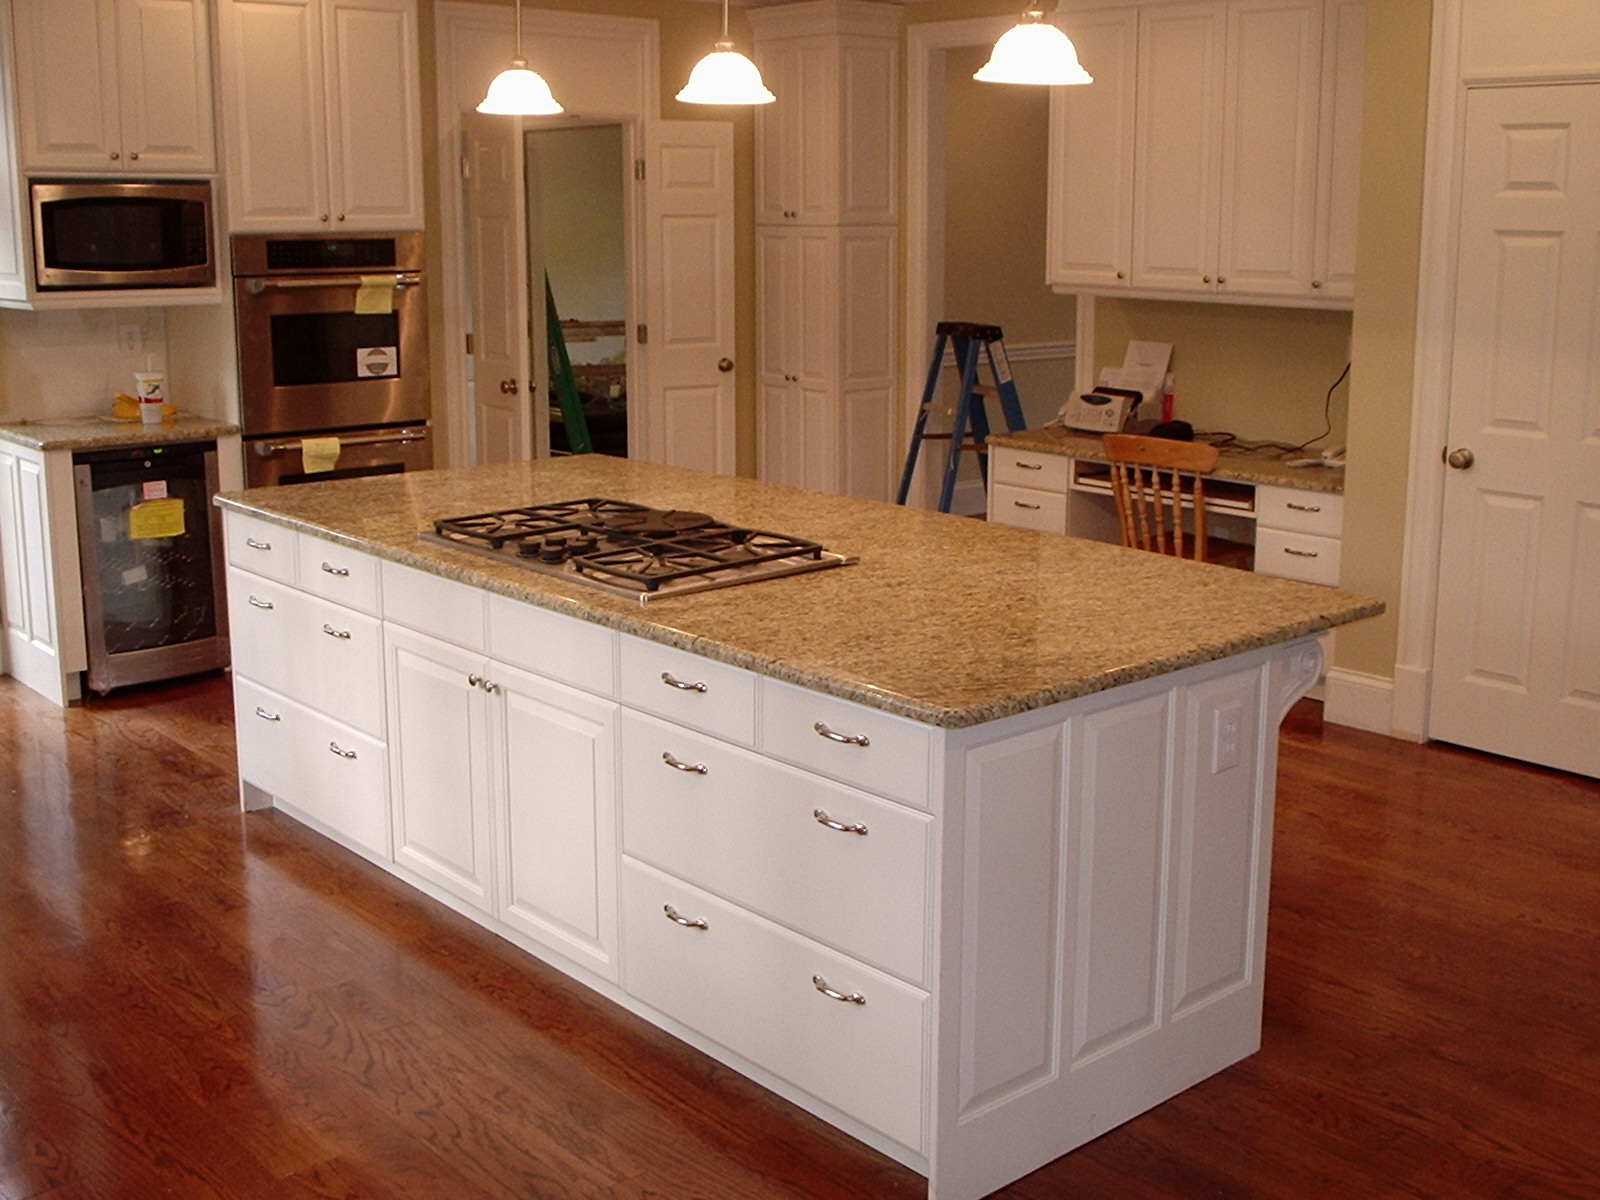 Kitchen cabinet plans dream house experience for Kitchen counter cabinet